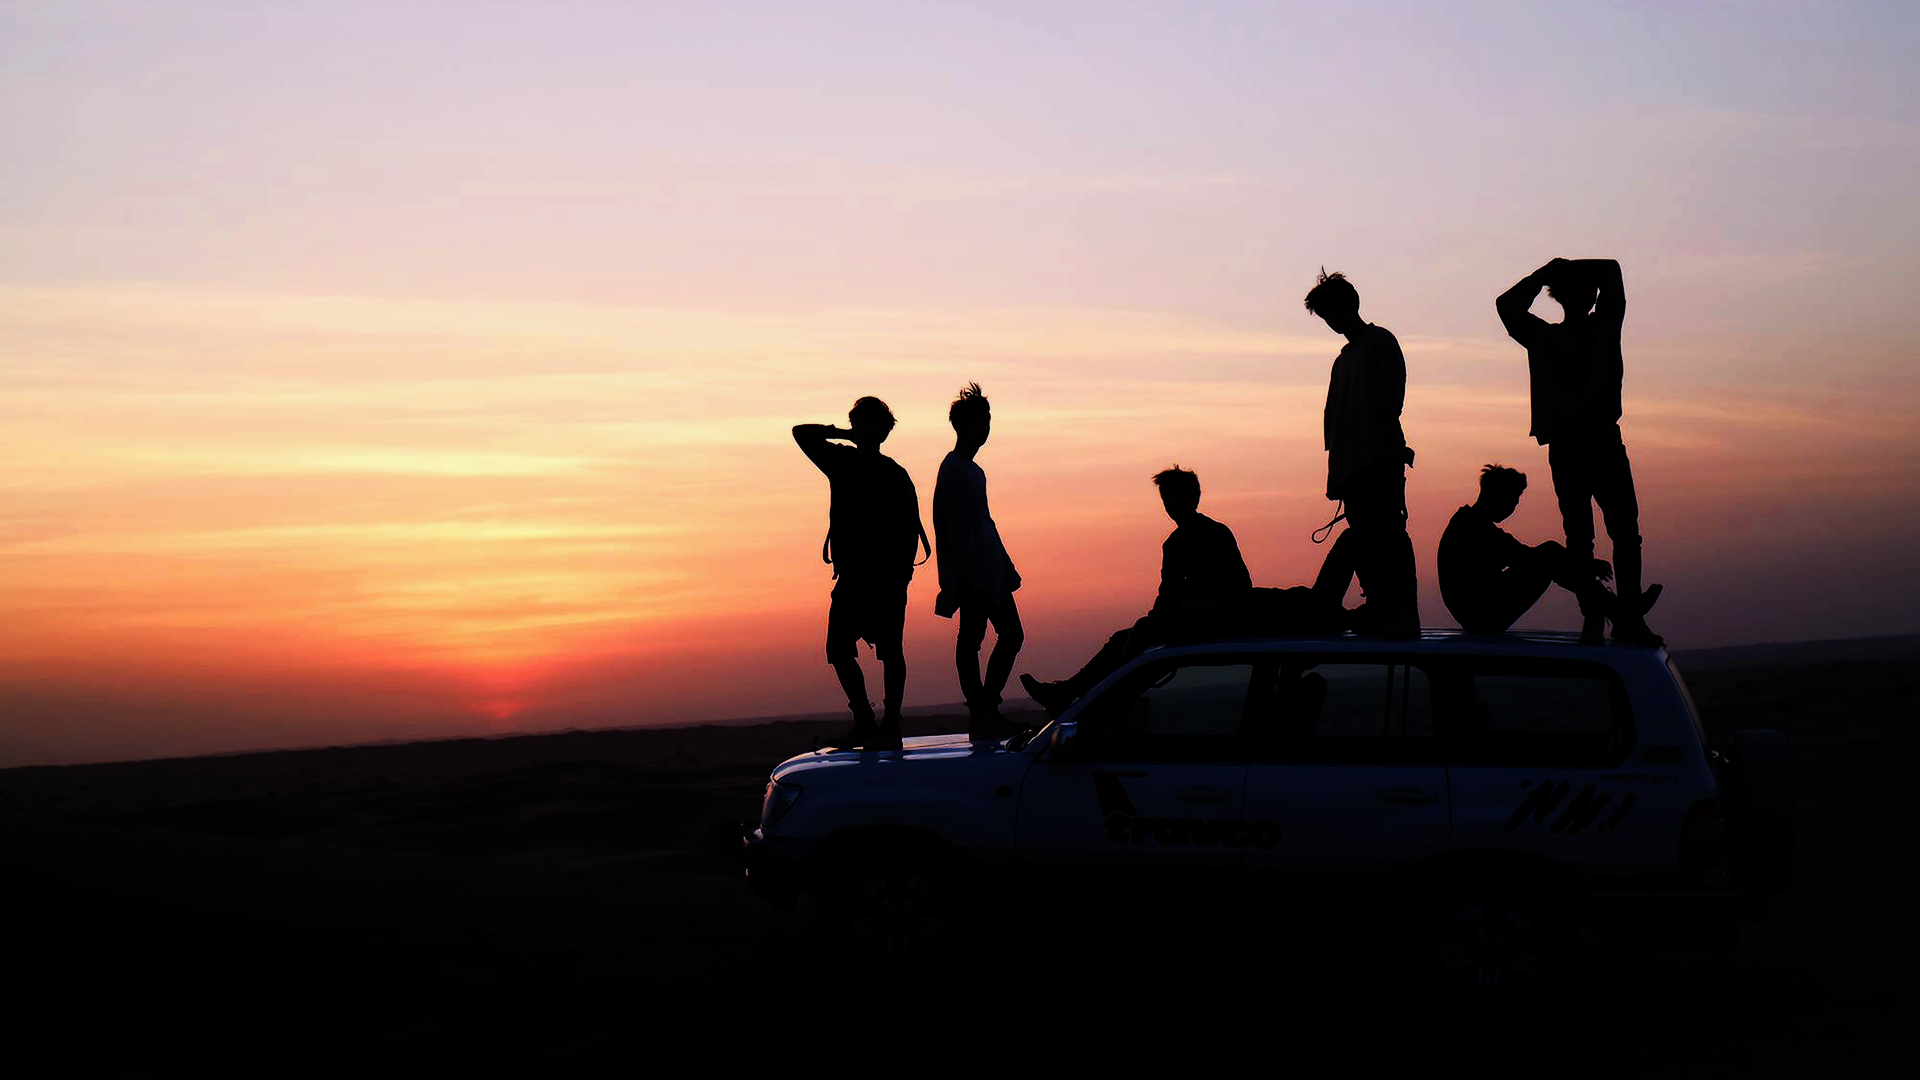 57 Bts For Pc Wallpapers On Wallpapersafari